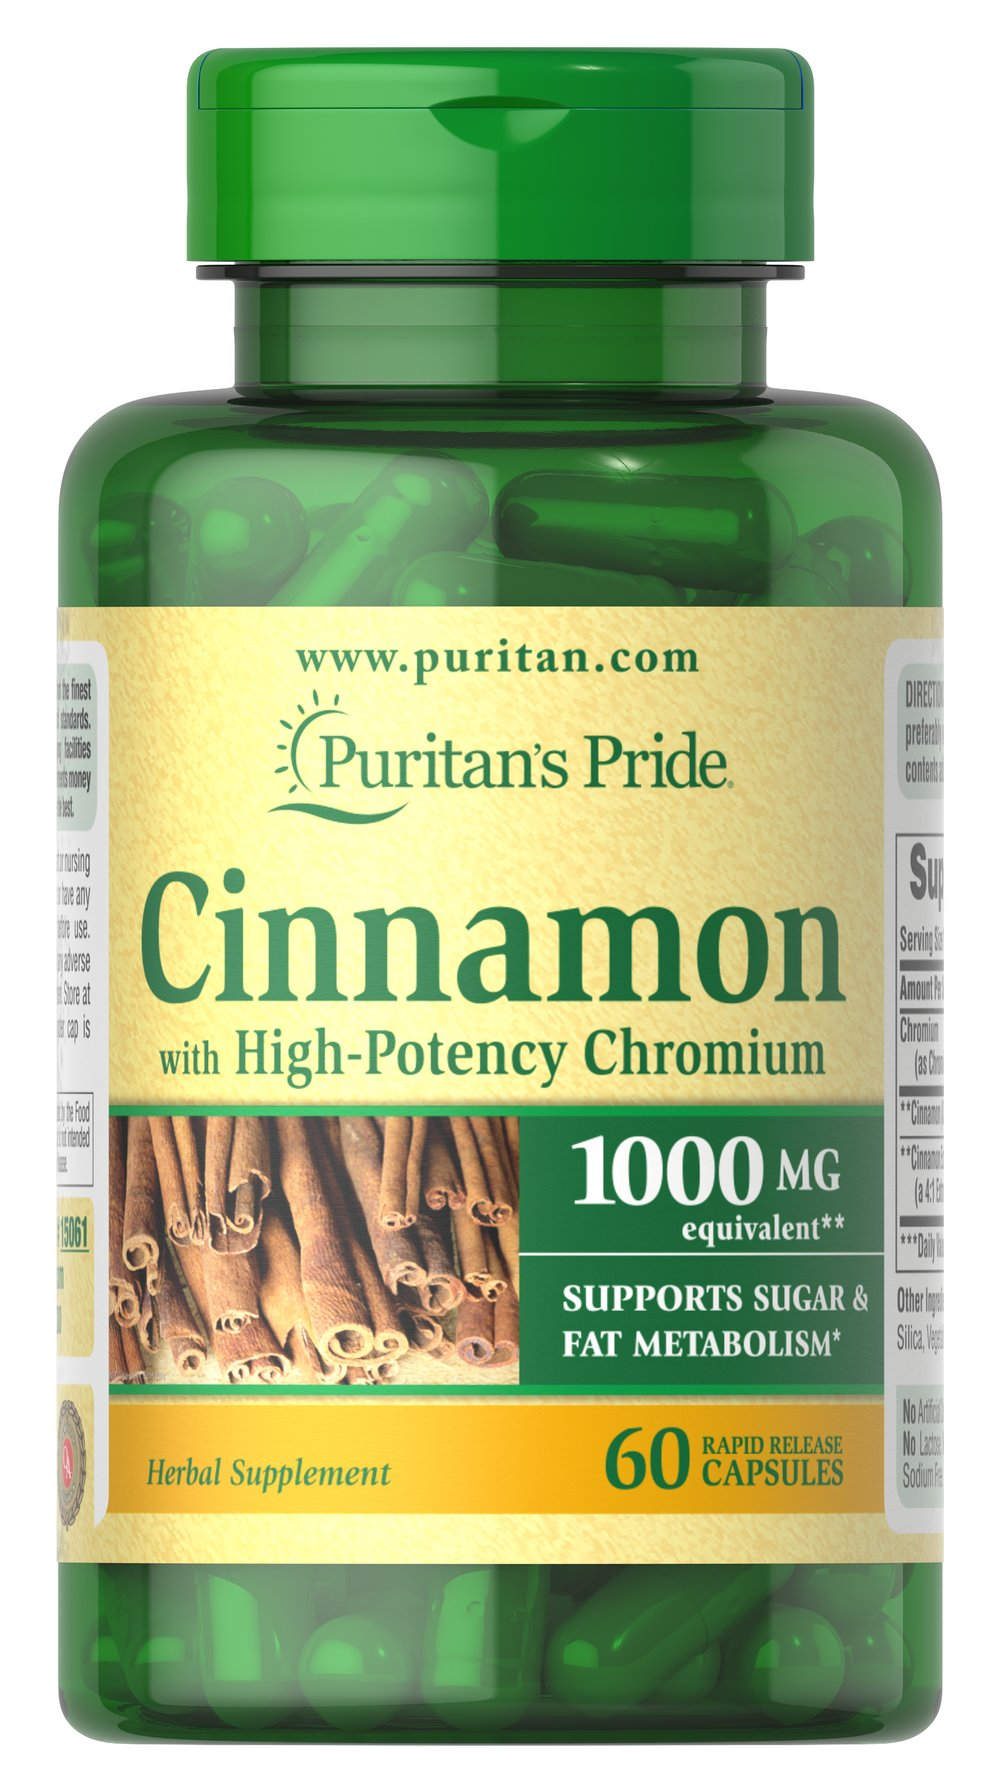 Cinnamon Complex with High Potency Chromium Cinnamon has long been used as a culinary spice, but did you know that as an herbal supplement, Cinnamon can help support sugar and fat metabolism?** Blood sugar is the body's primary source of energy. Cinnamon also plays a role in supporting heart and circulatory health.** <br /> <br />This formula includes 200 mg of high-potency Chromium Picolinate, which plays a role in carbohydrate and fat metabolism.** Chromium is also inv